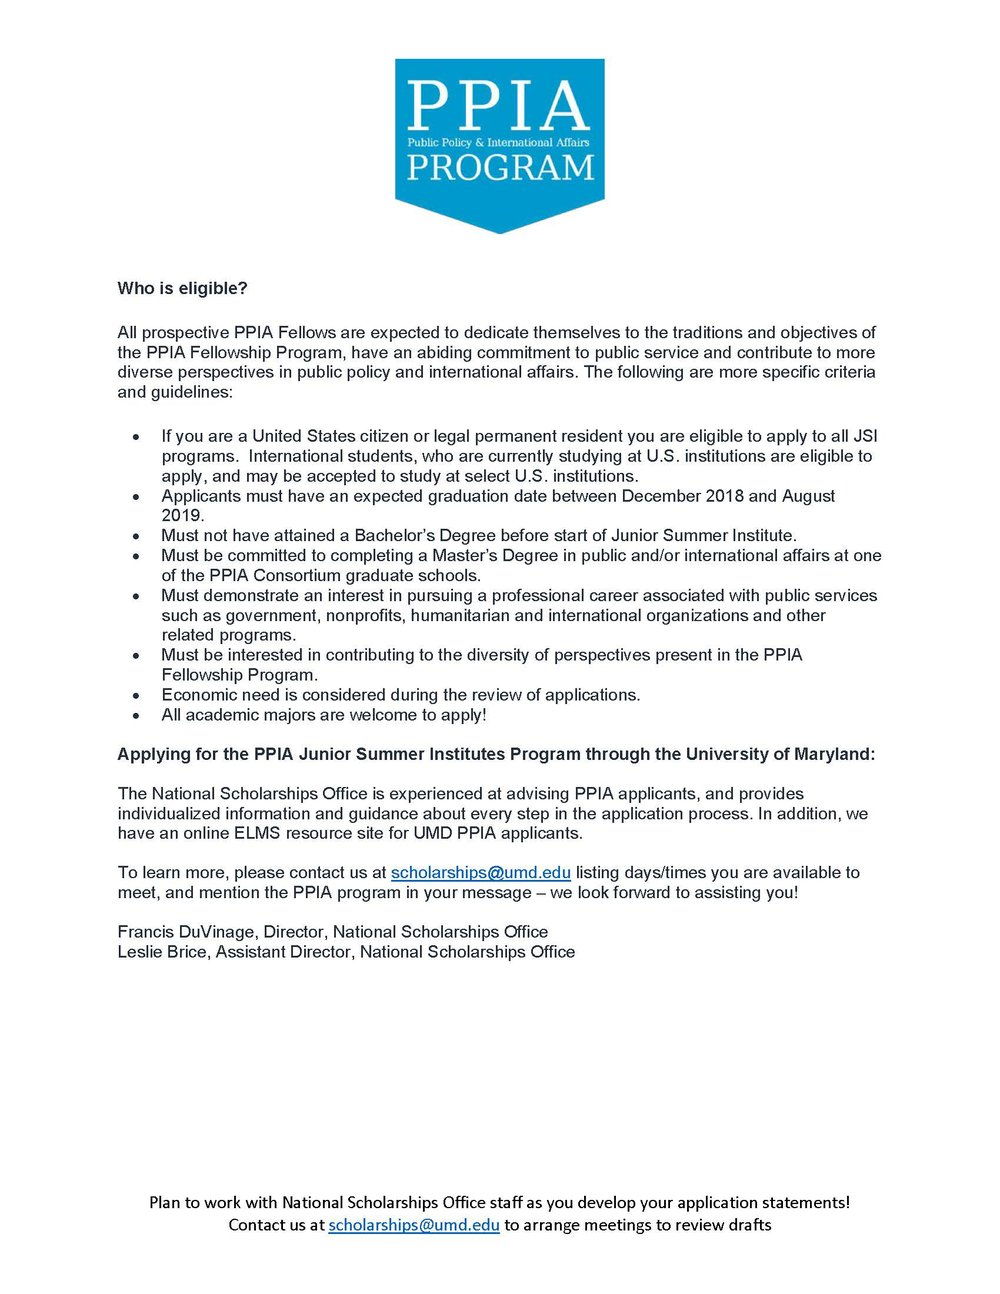 PPIA Int'l Affairs & Public Policy Summer Institute - Program Description Handout_Page_2.jpg